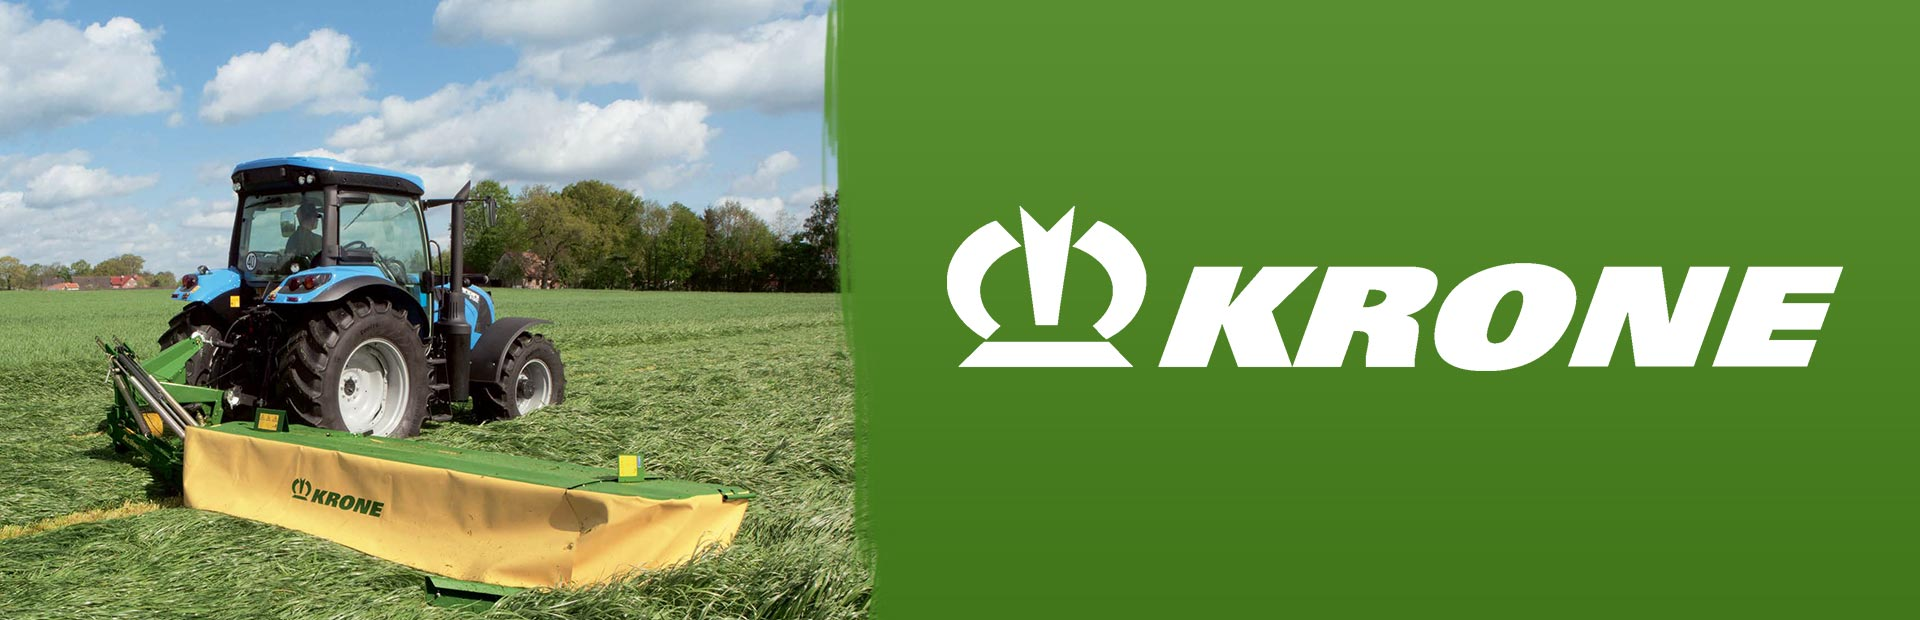 Krone Mowers: Click here to view the models.